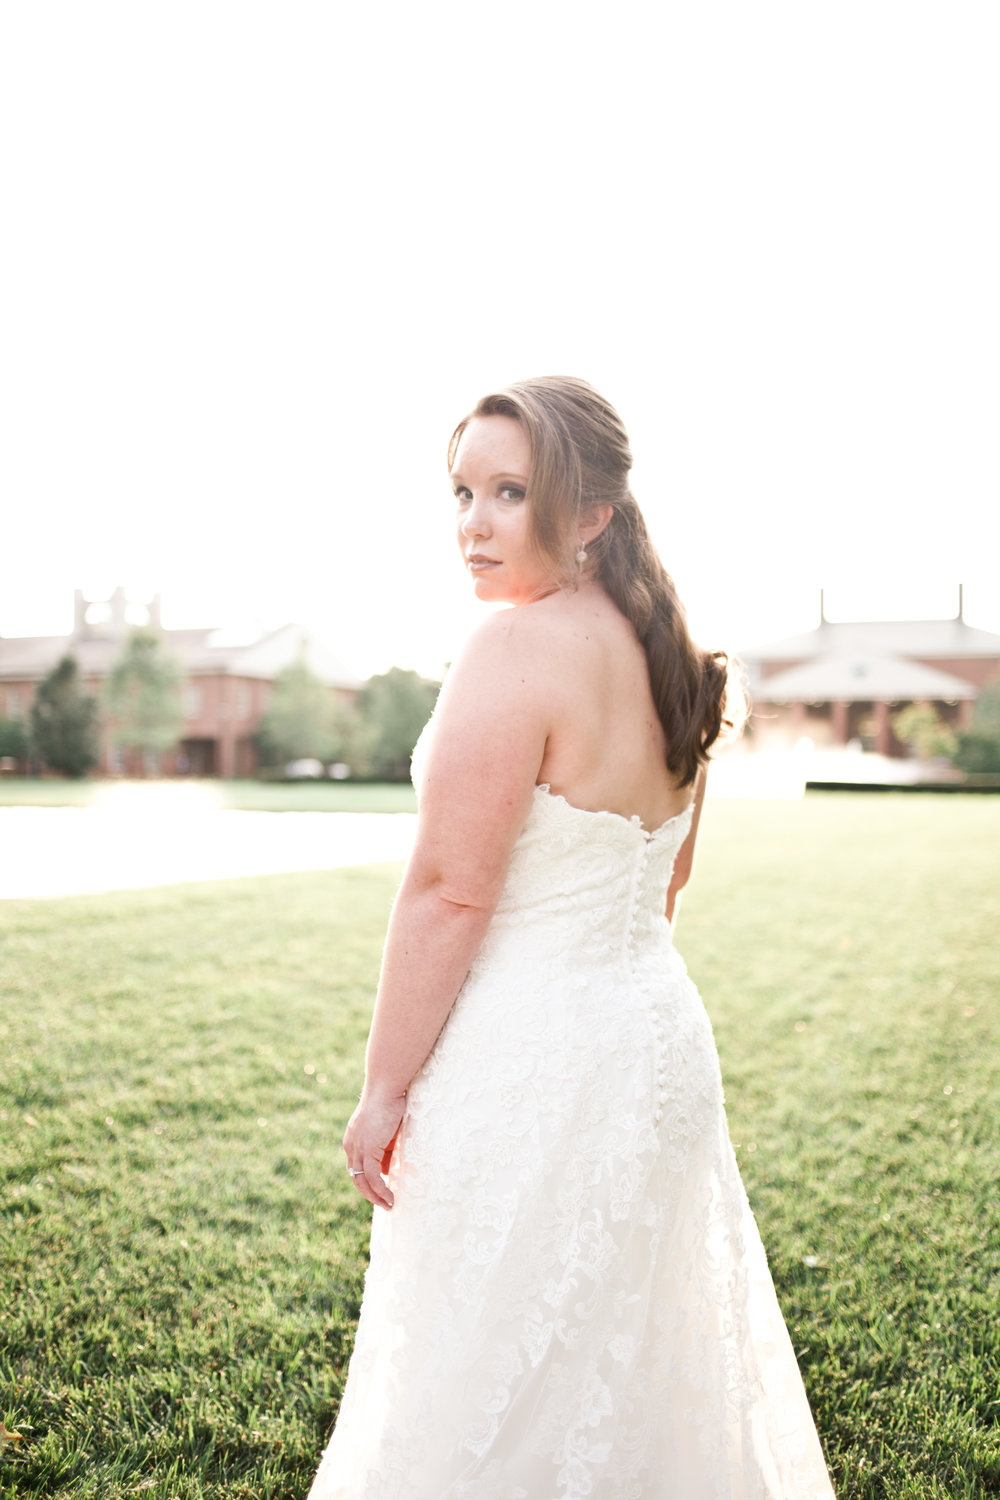 gabbie_bridal_poured_out_photography-70.jpg